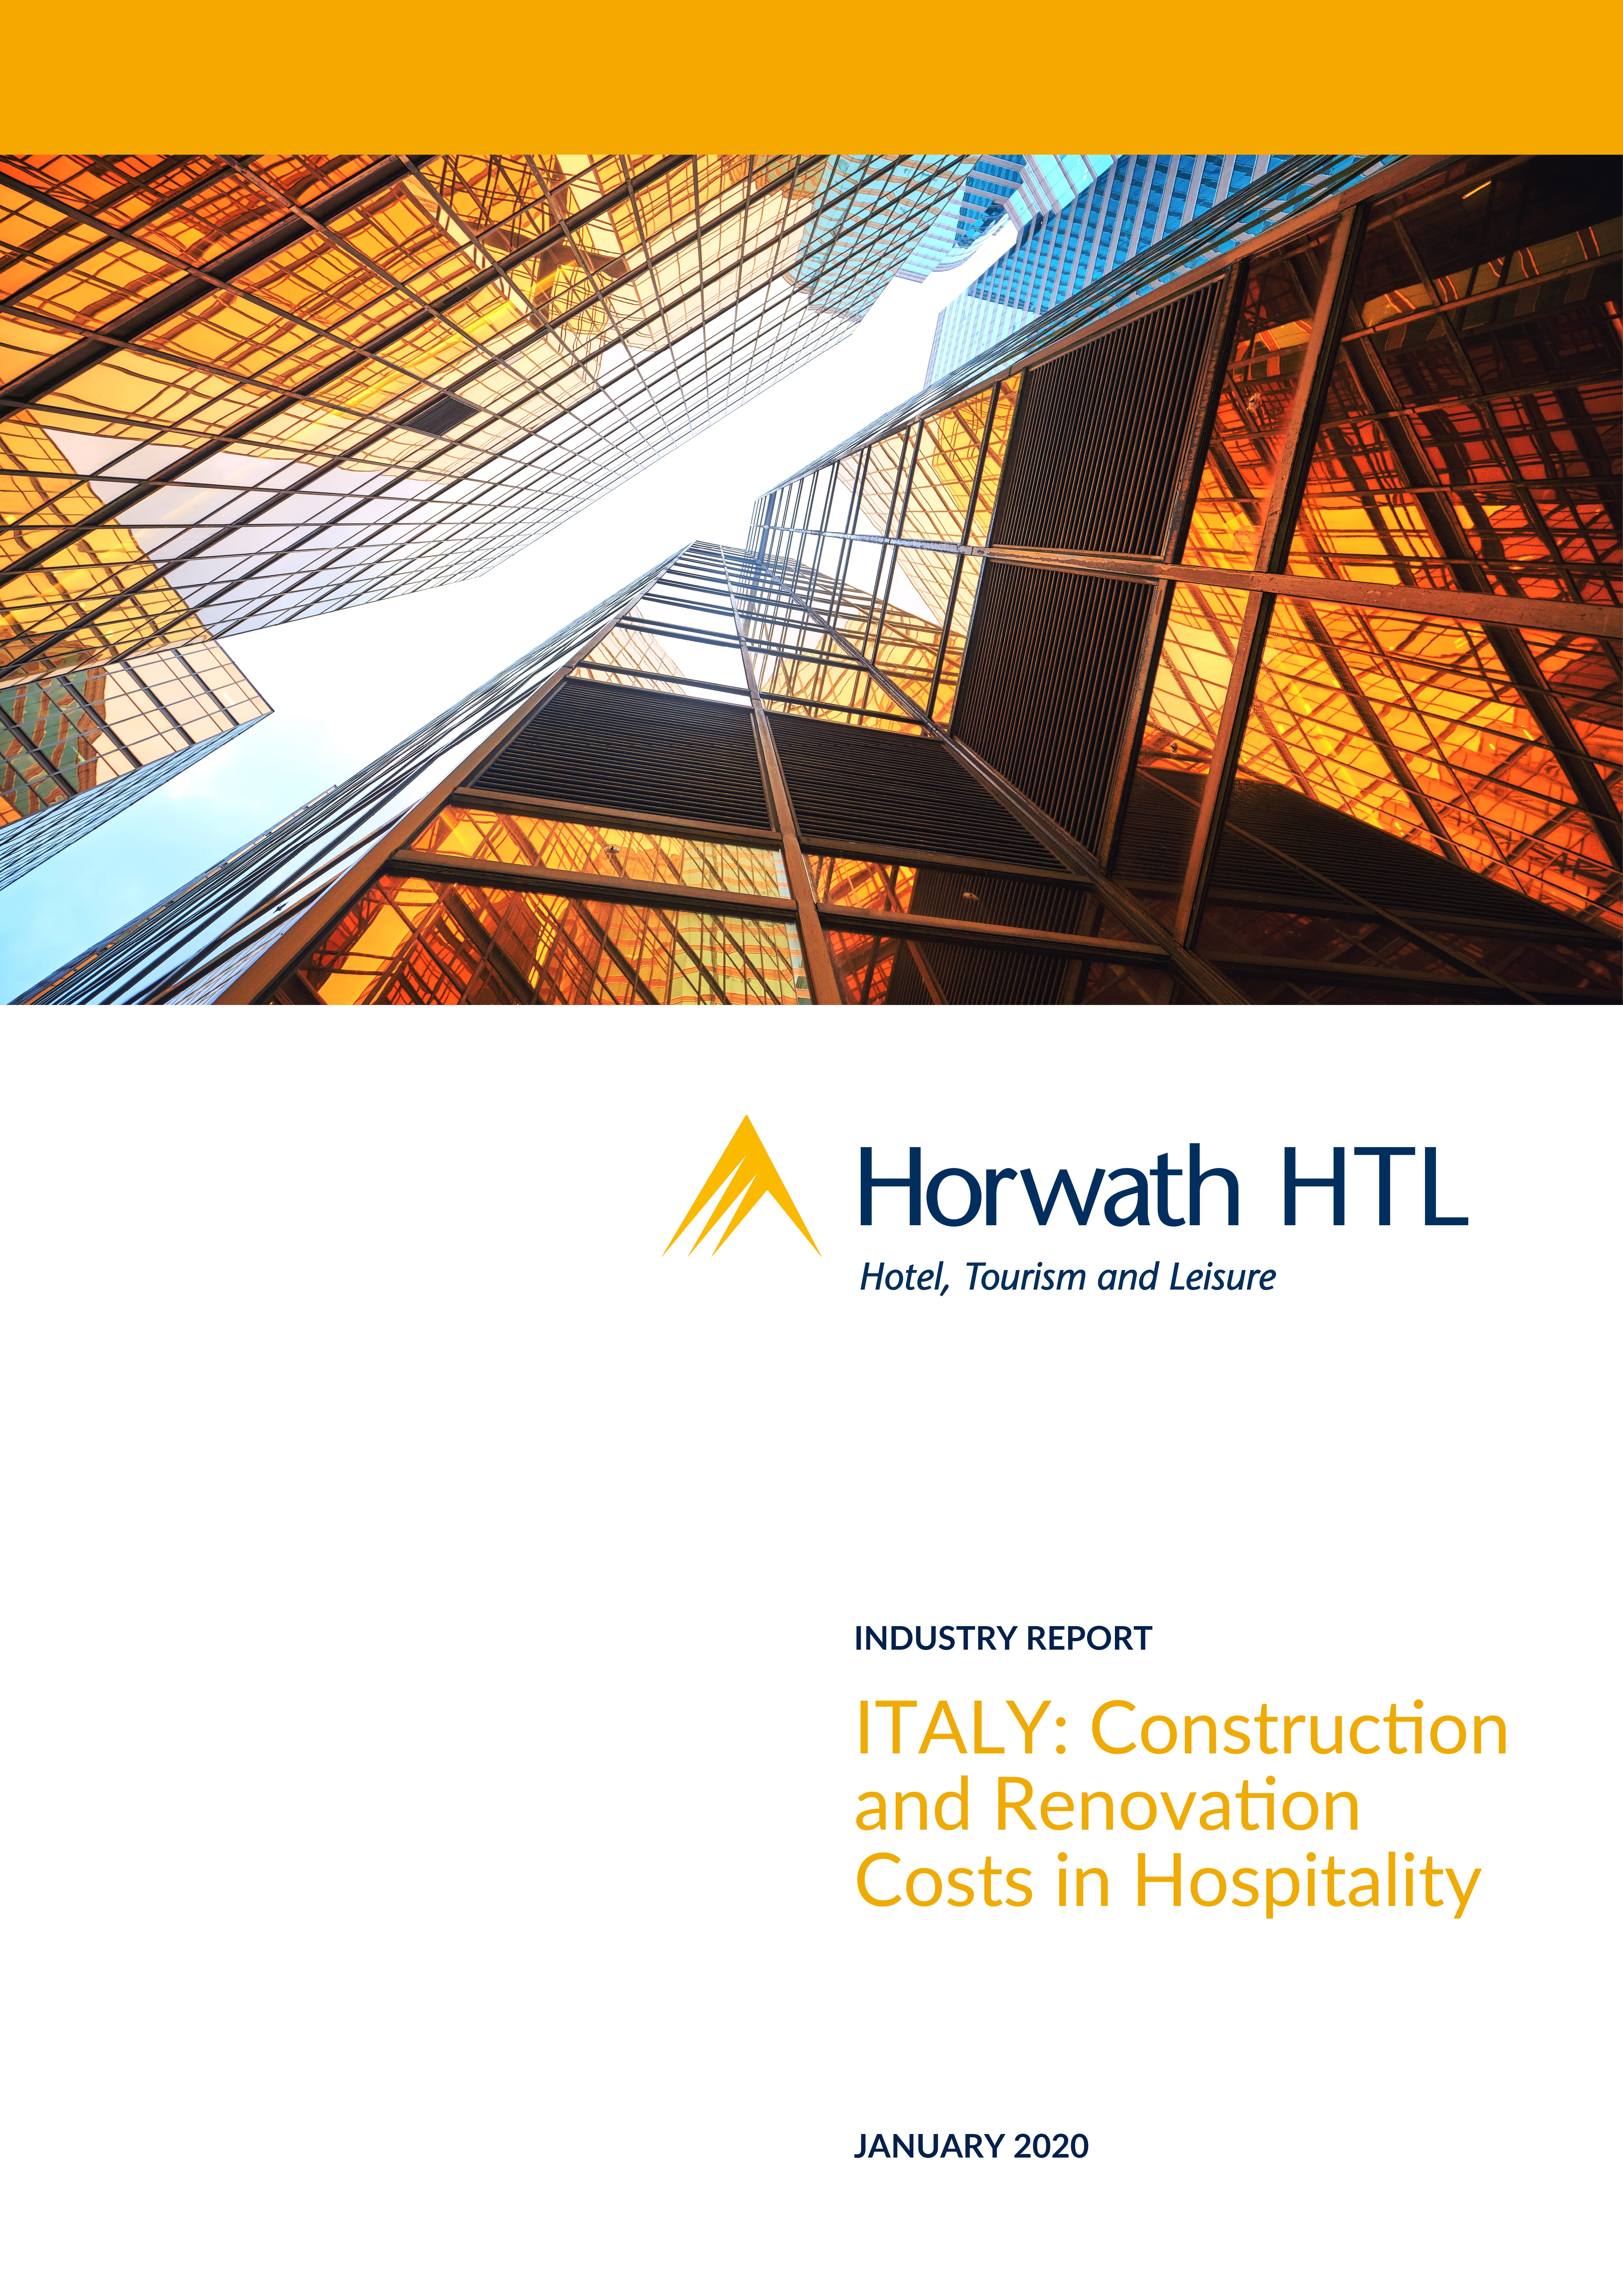 Industry Report ITALY Construction Renovation Costs